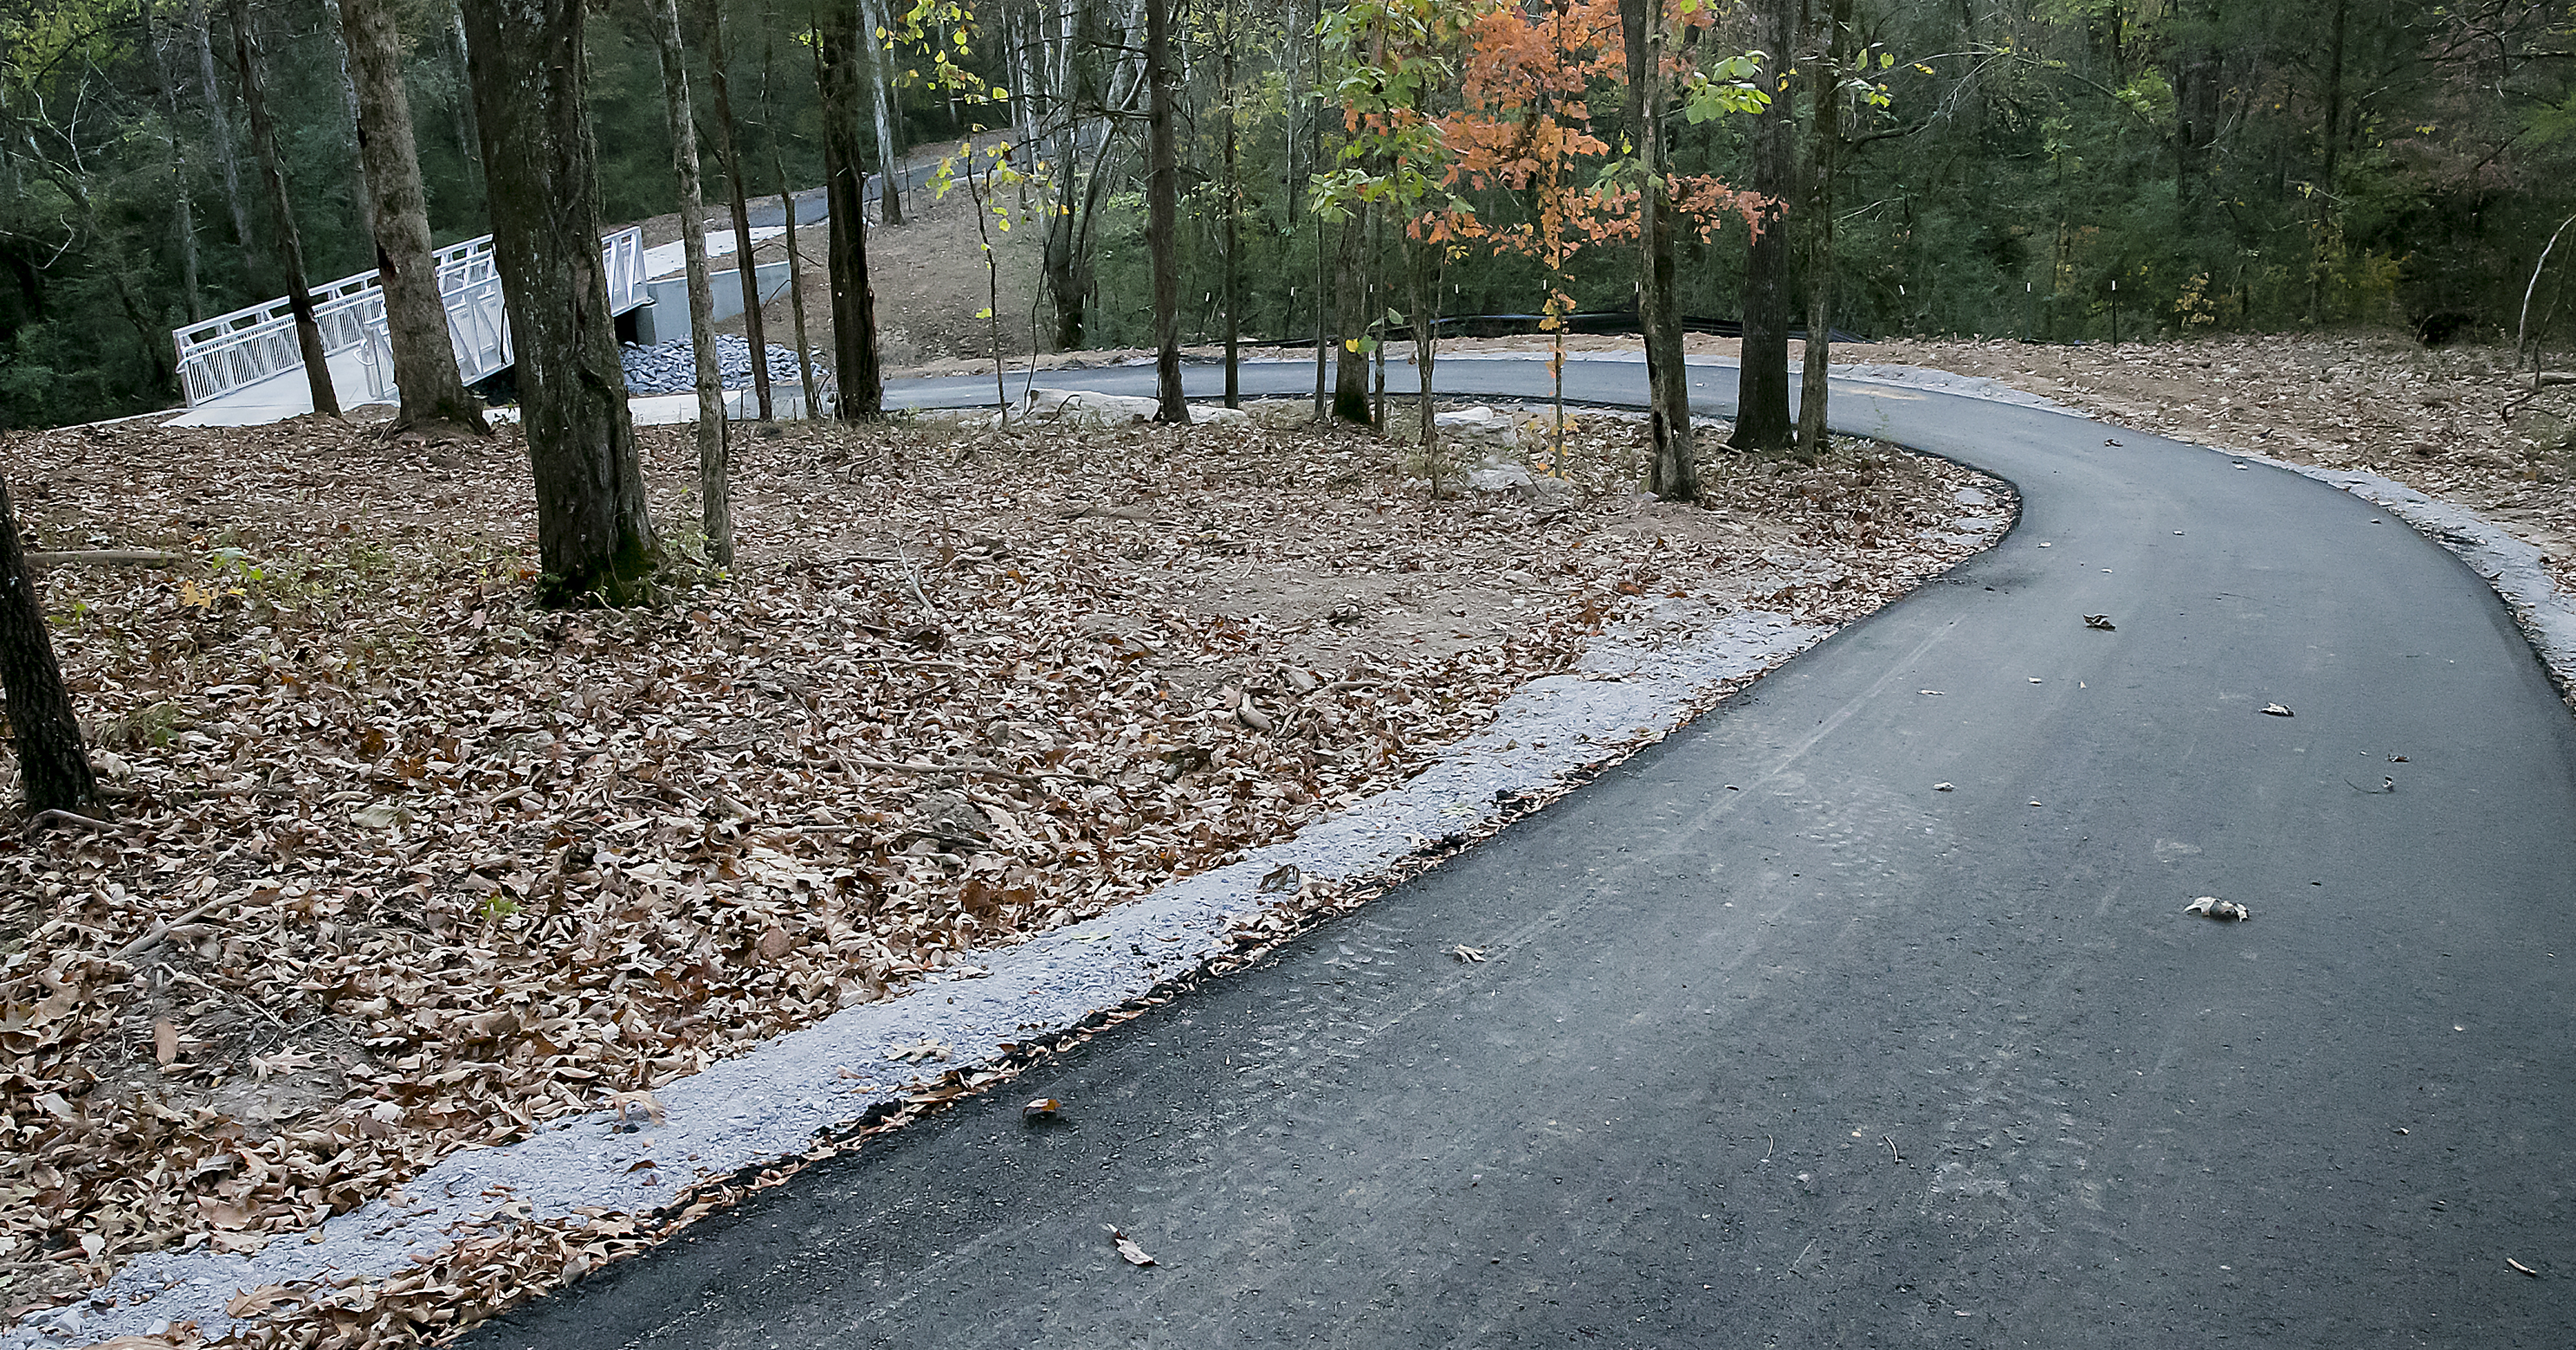 New Greenway Trail in Murfreesboro has overlooks